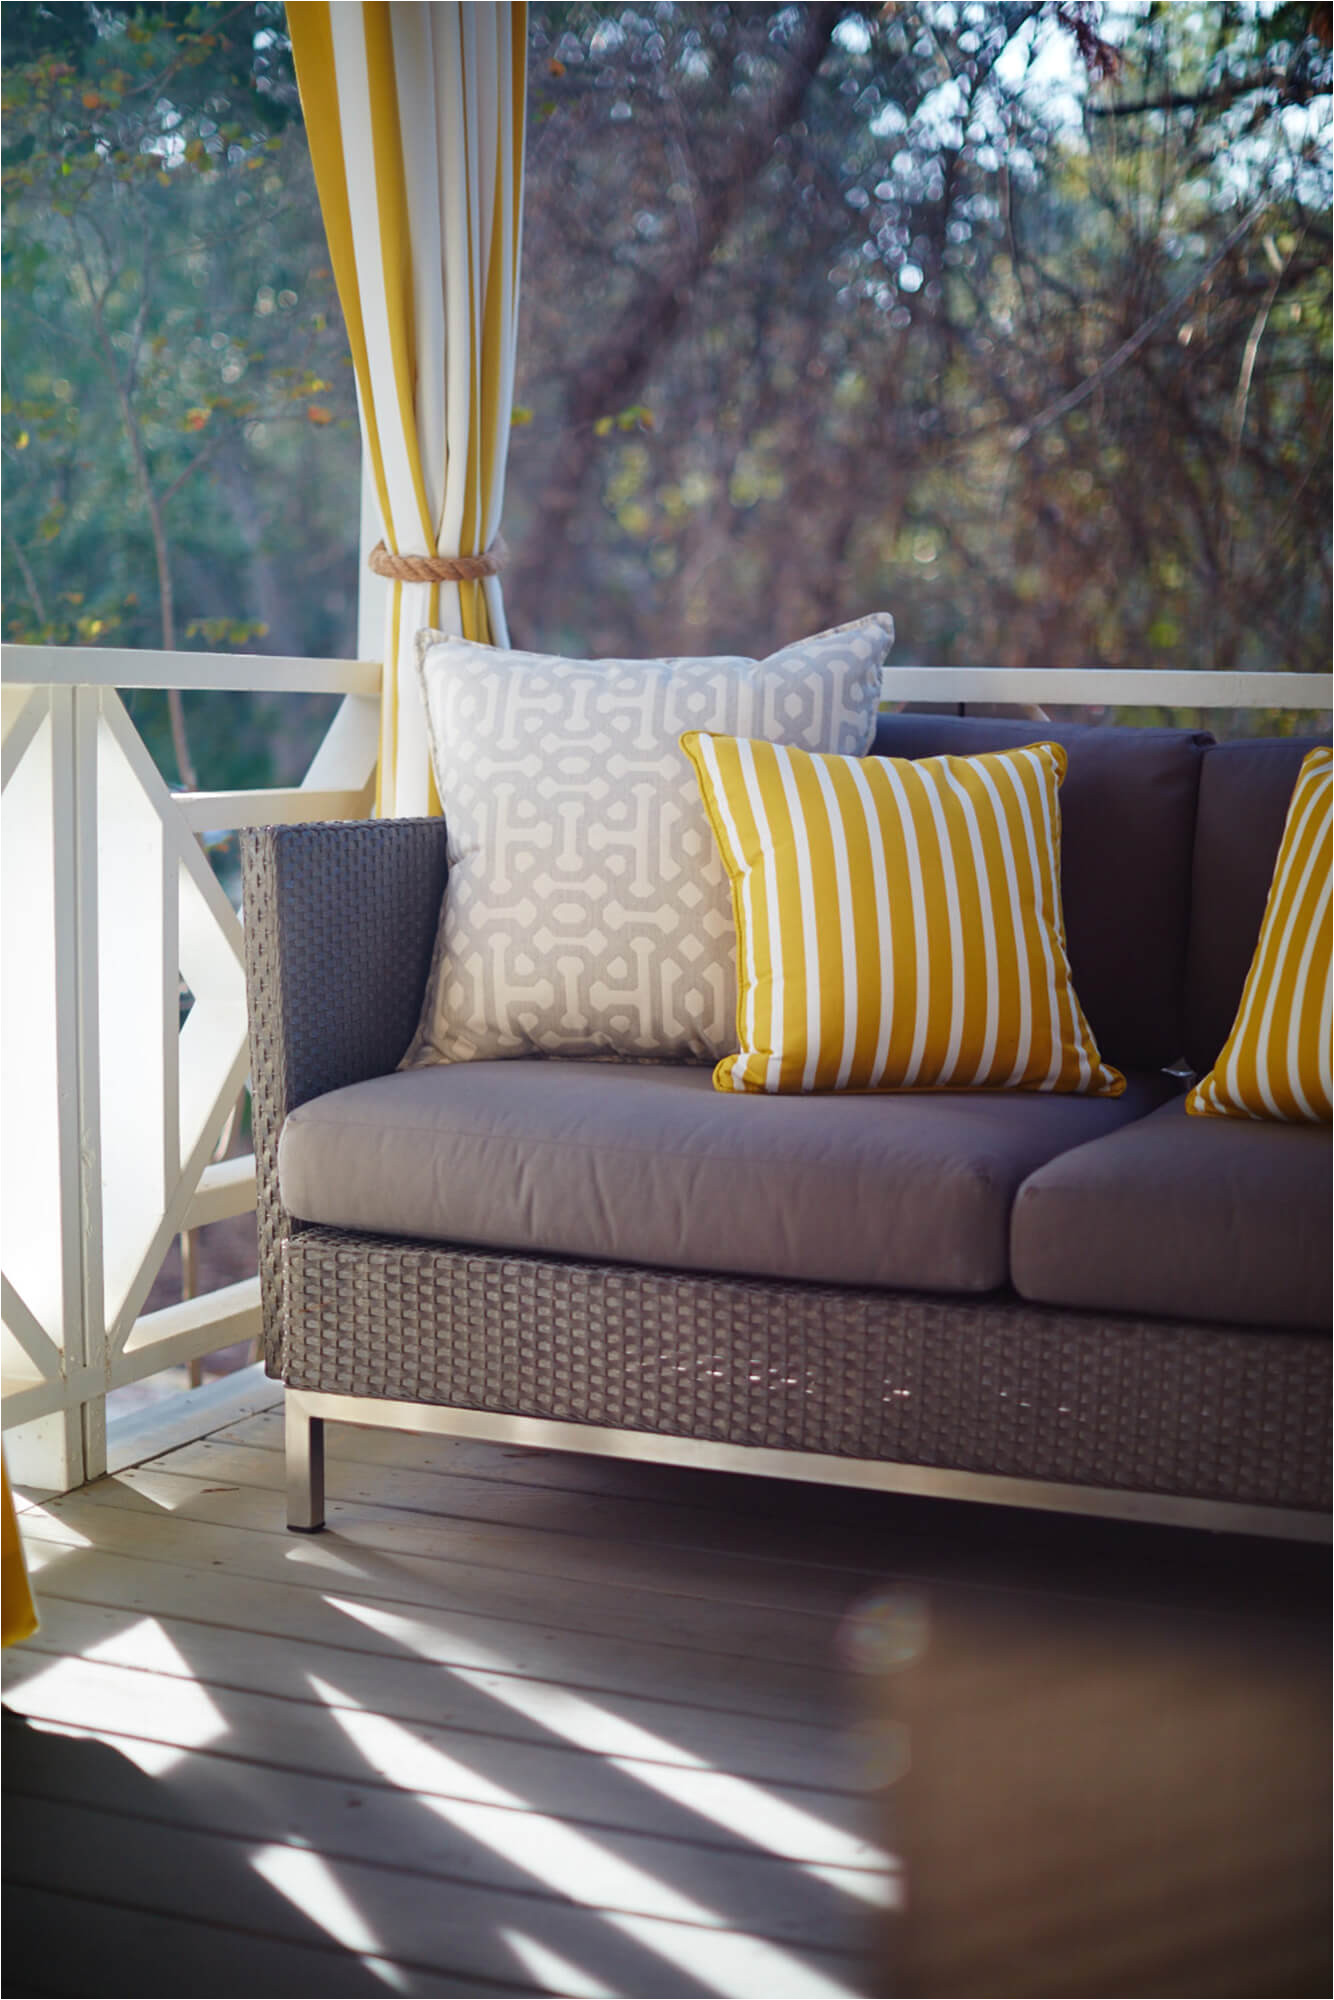 outdoor sofa with yellow and grey decorative throw pillows and yellow and white striped drapery outdoor drapery in